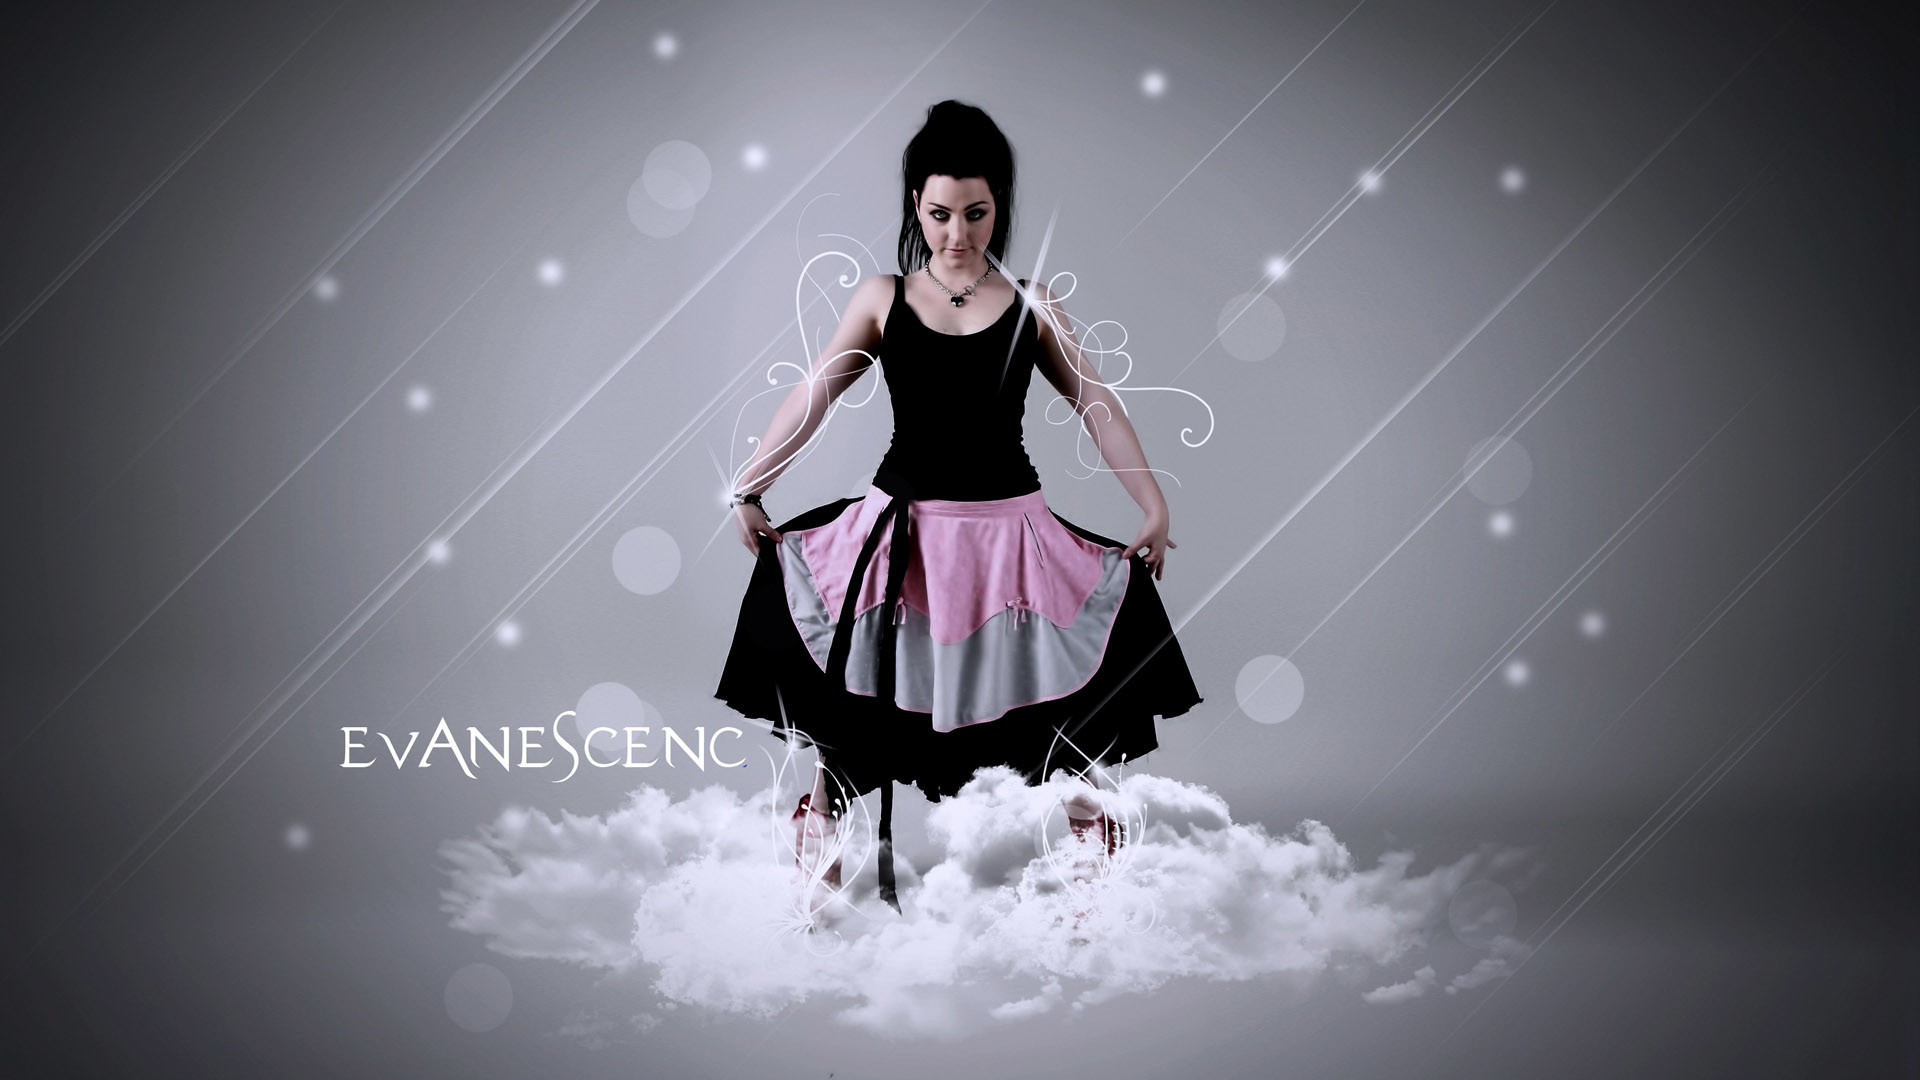 1920x1080 Amy Lee Wallpaper  Wallpapers,  Wallpapers .